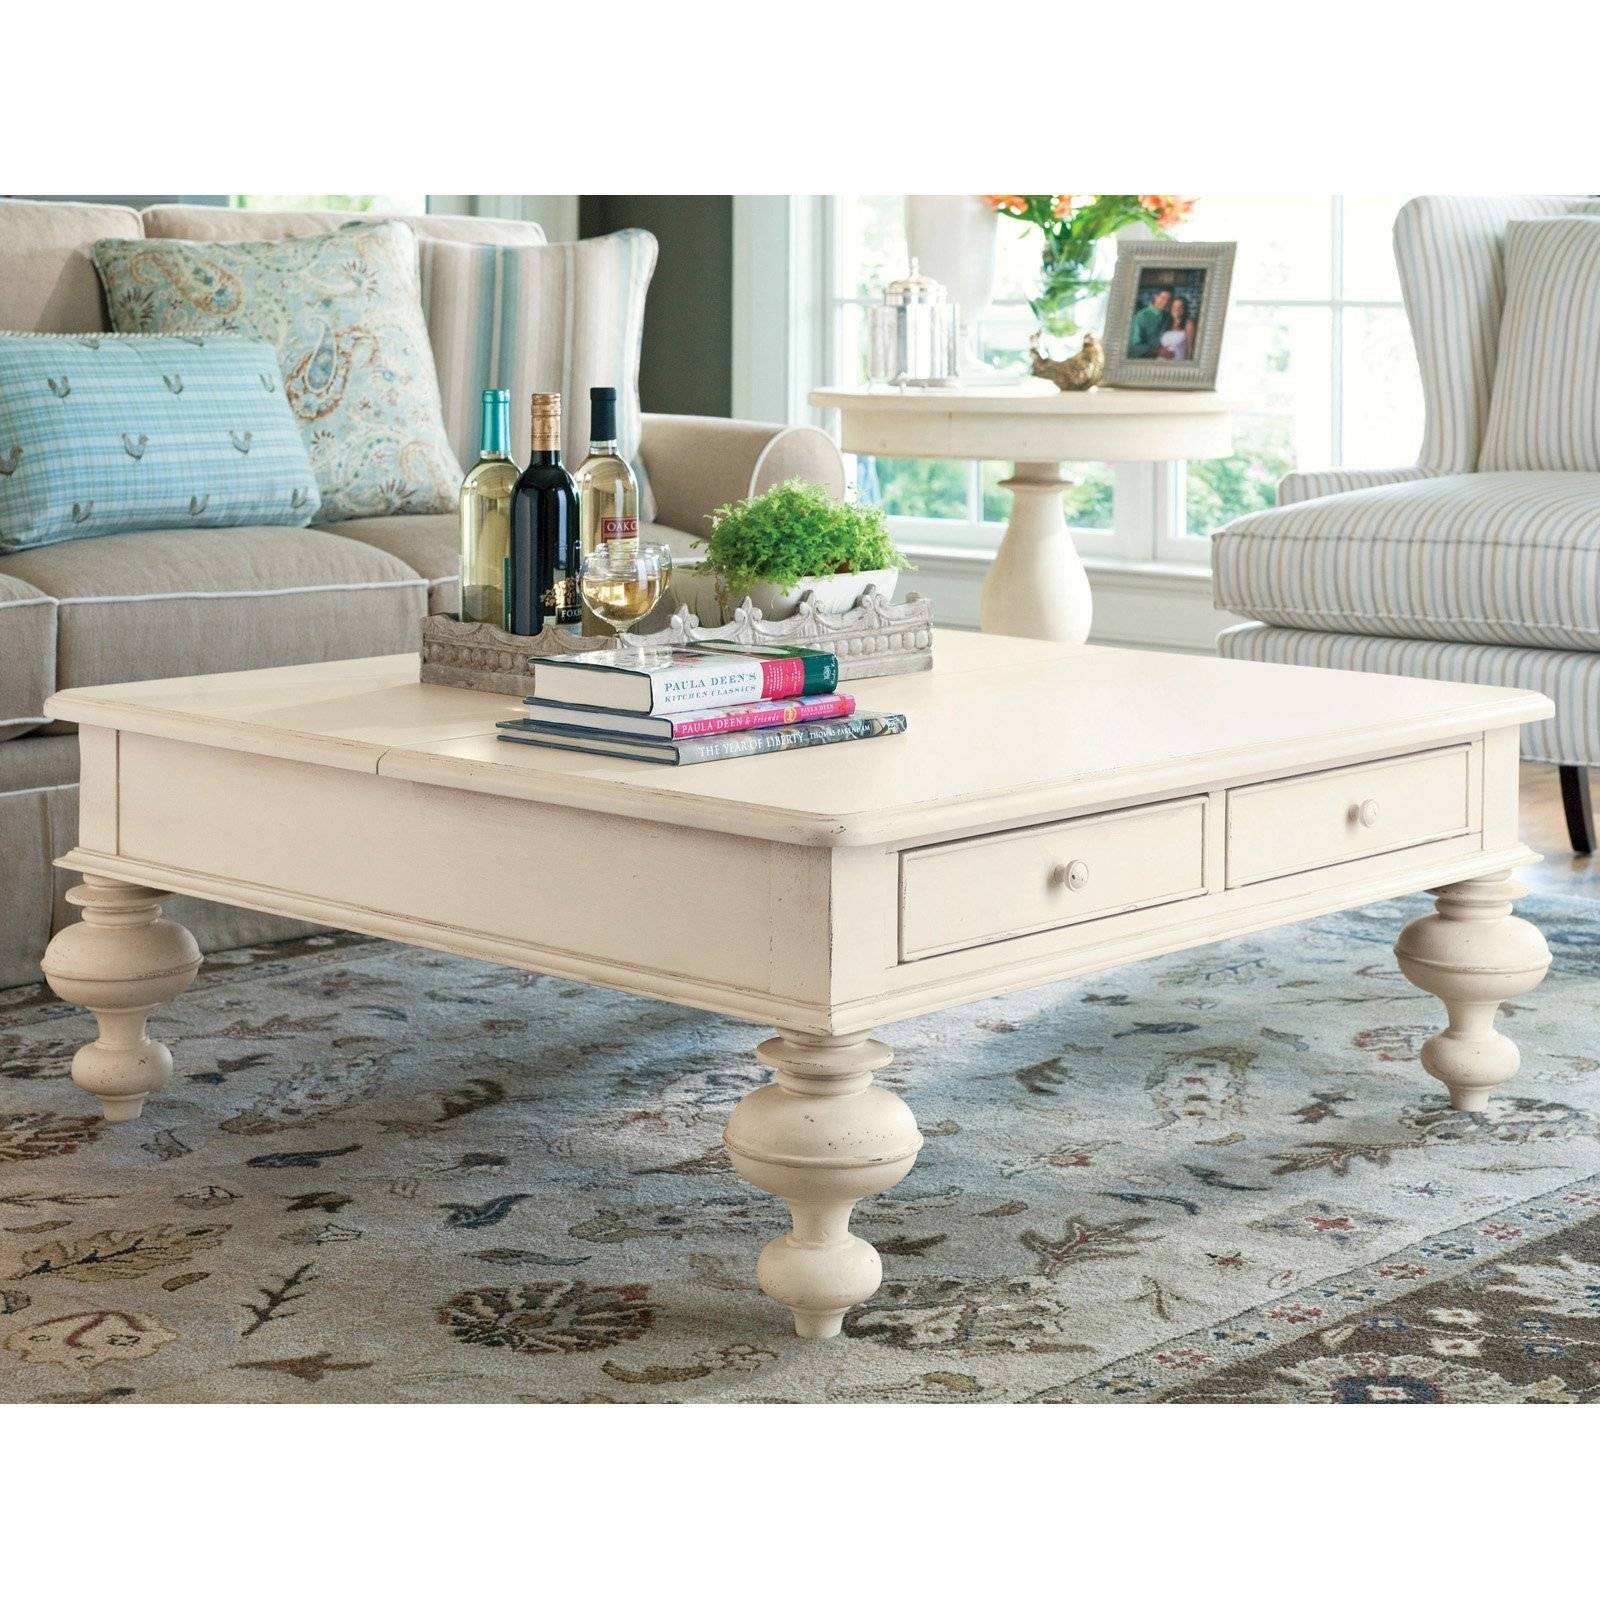 Furniture. Glamorous White Coffee Tables With Storage For Warm in Square Coffee Tables With Drawers (Image 16 of 30)